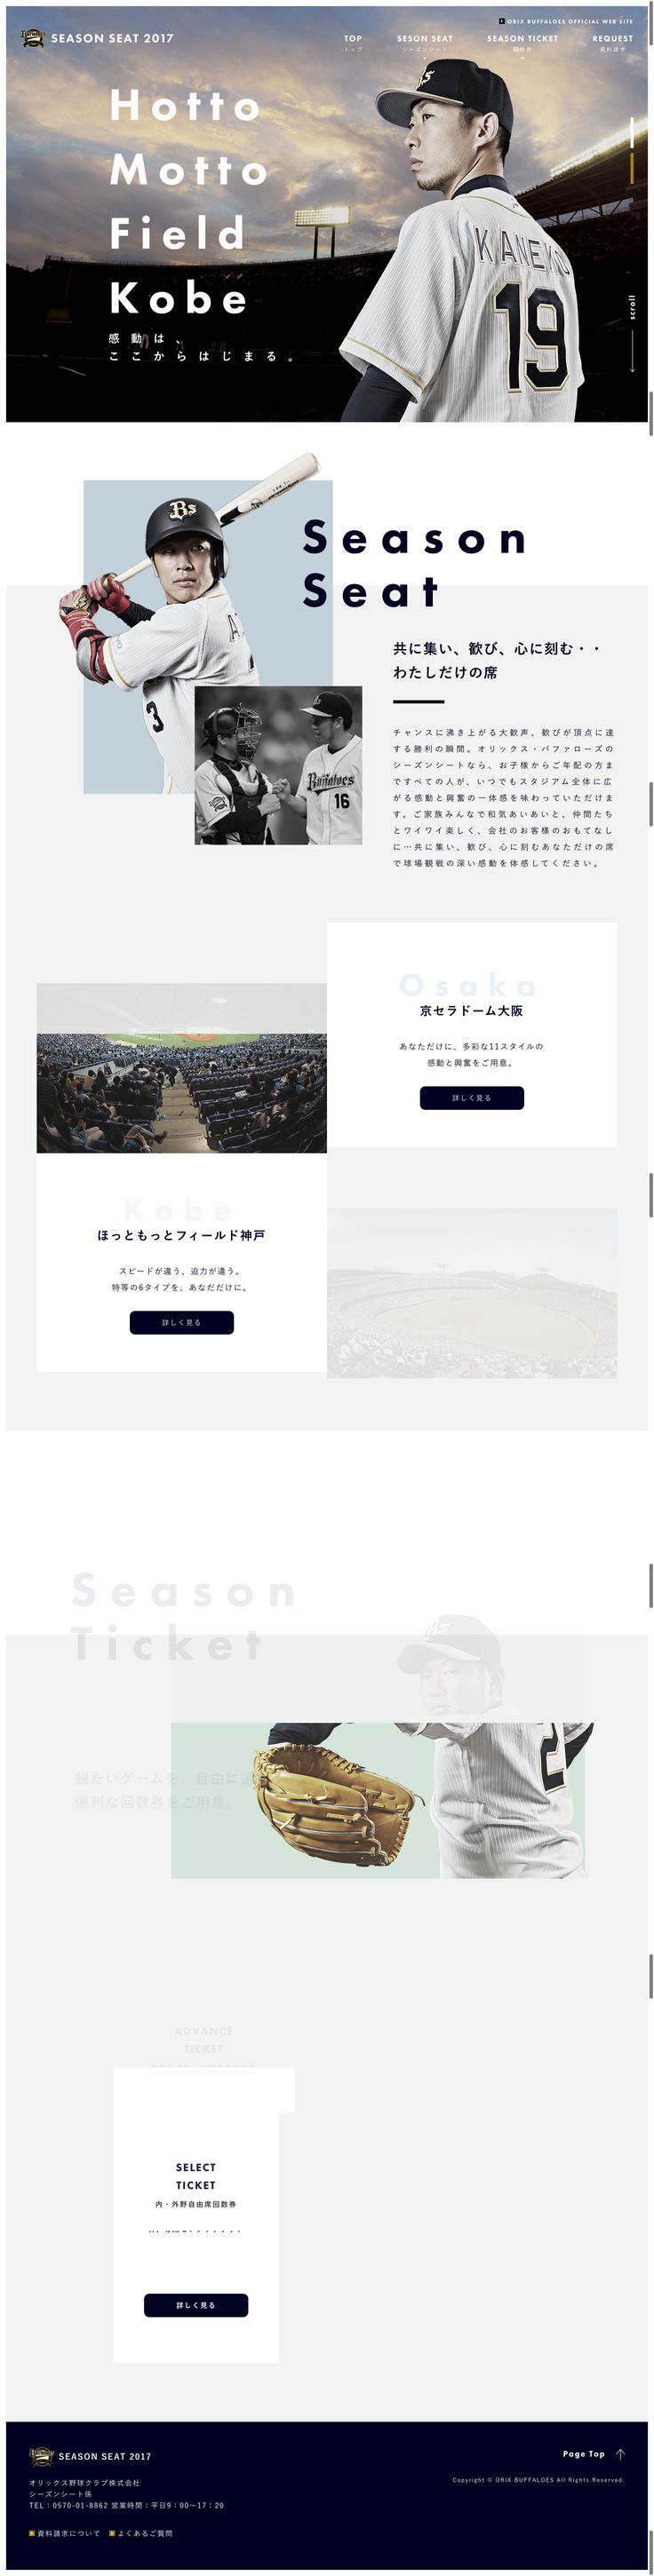 #sport-web-design #landing-page #1-column-layout #key-color-gray #bg-color-white #Japanese #Photographic